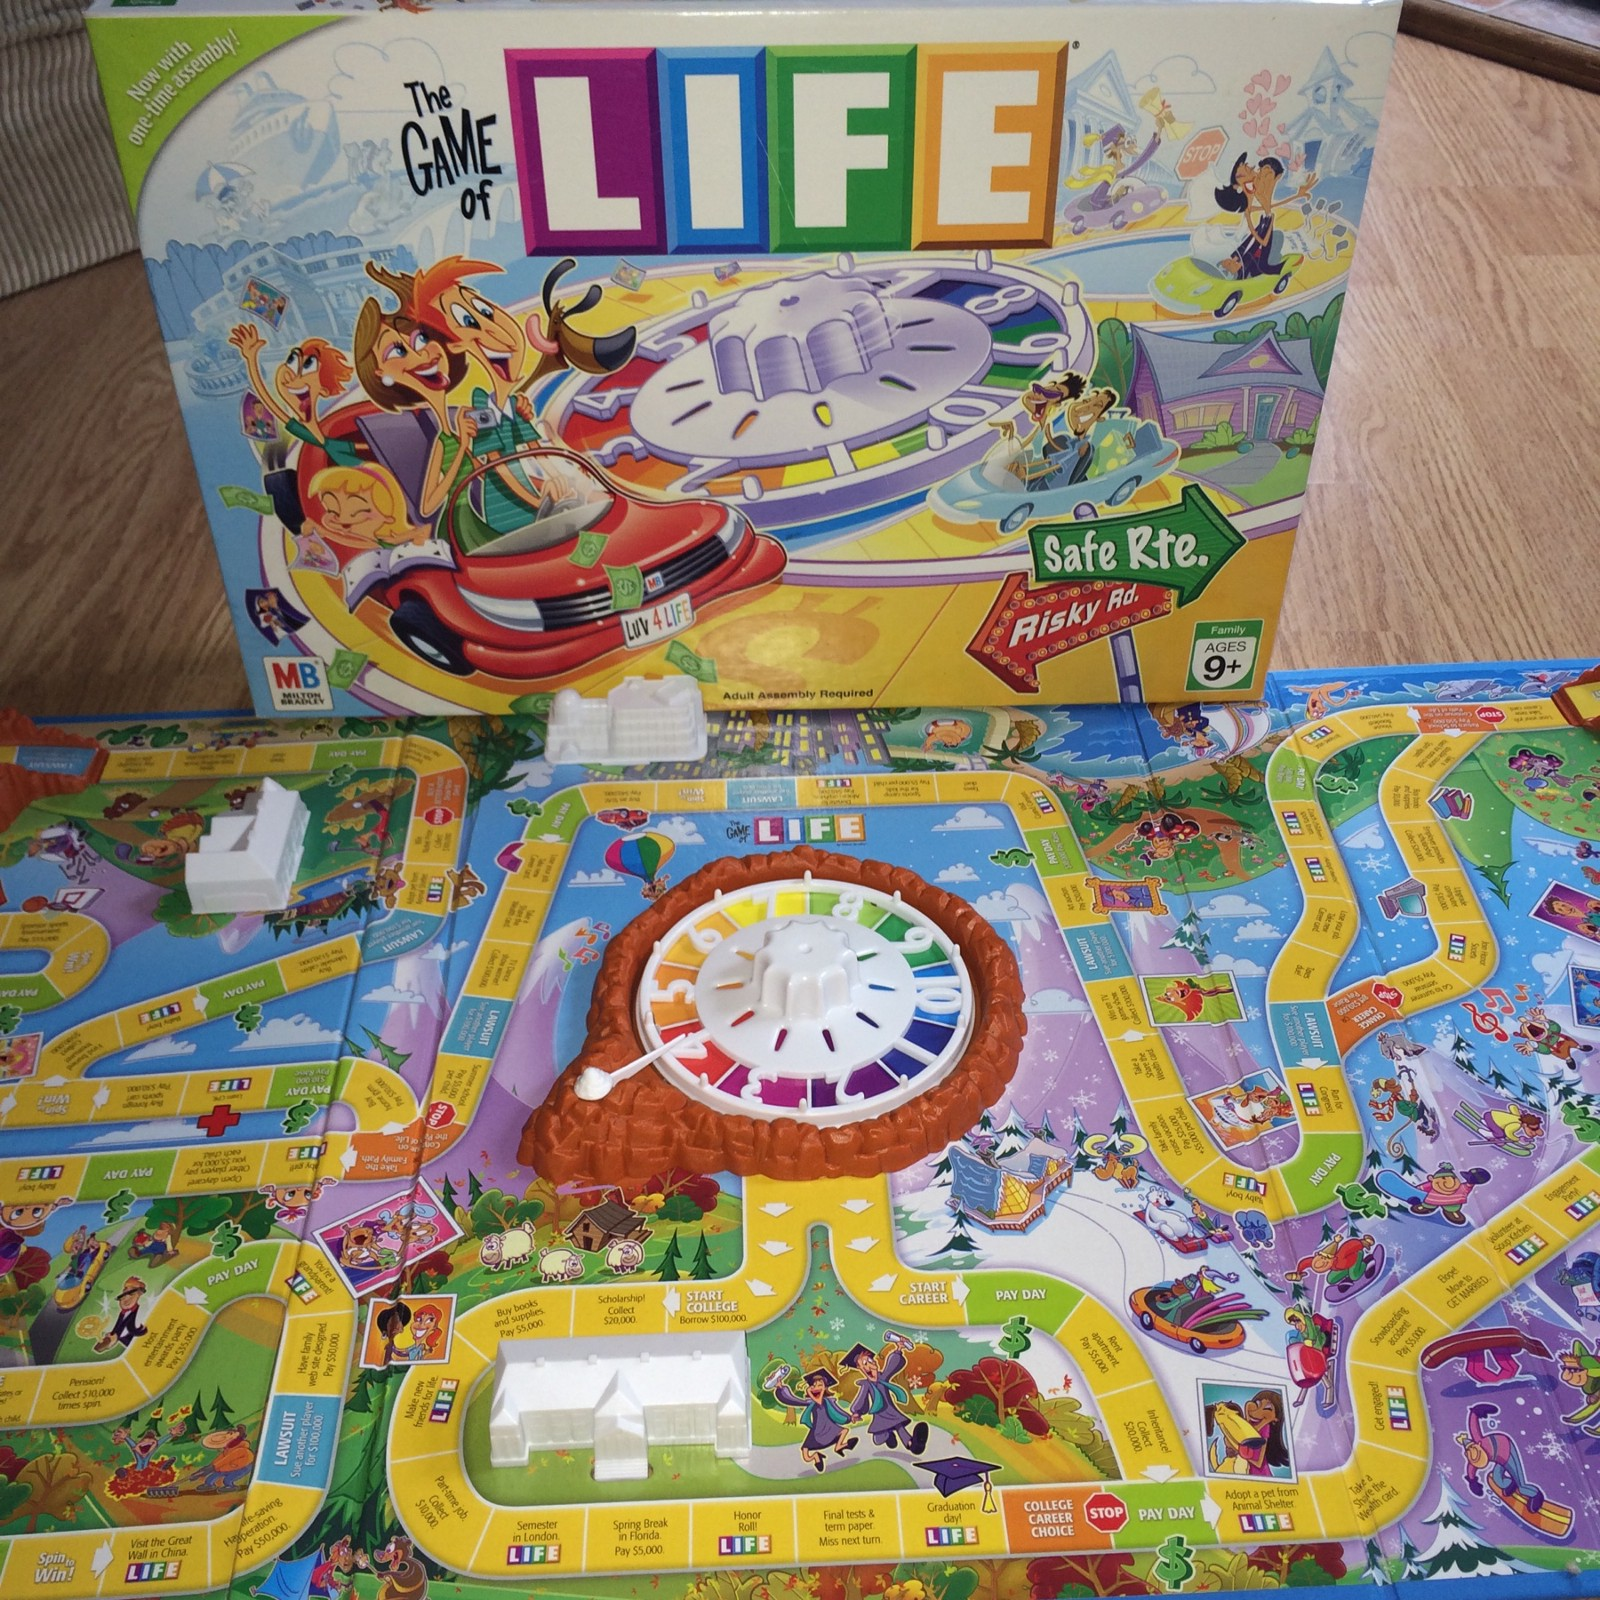 Hacking The Game Of Life Teaching Game Design Productcoalition